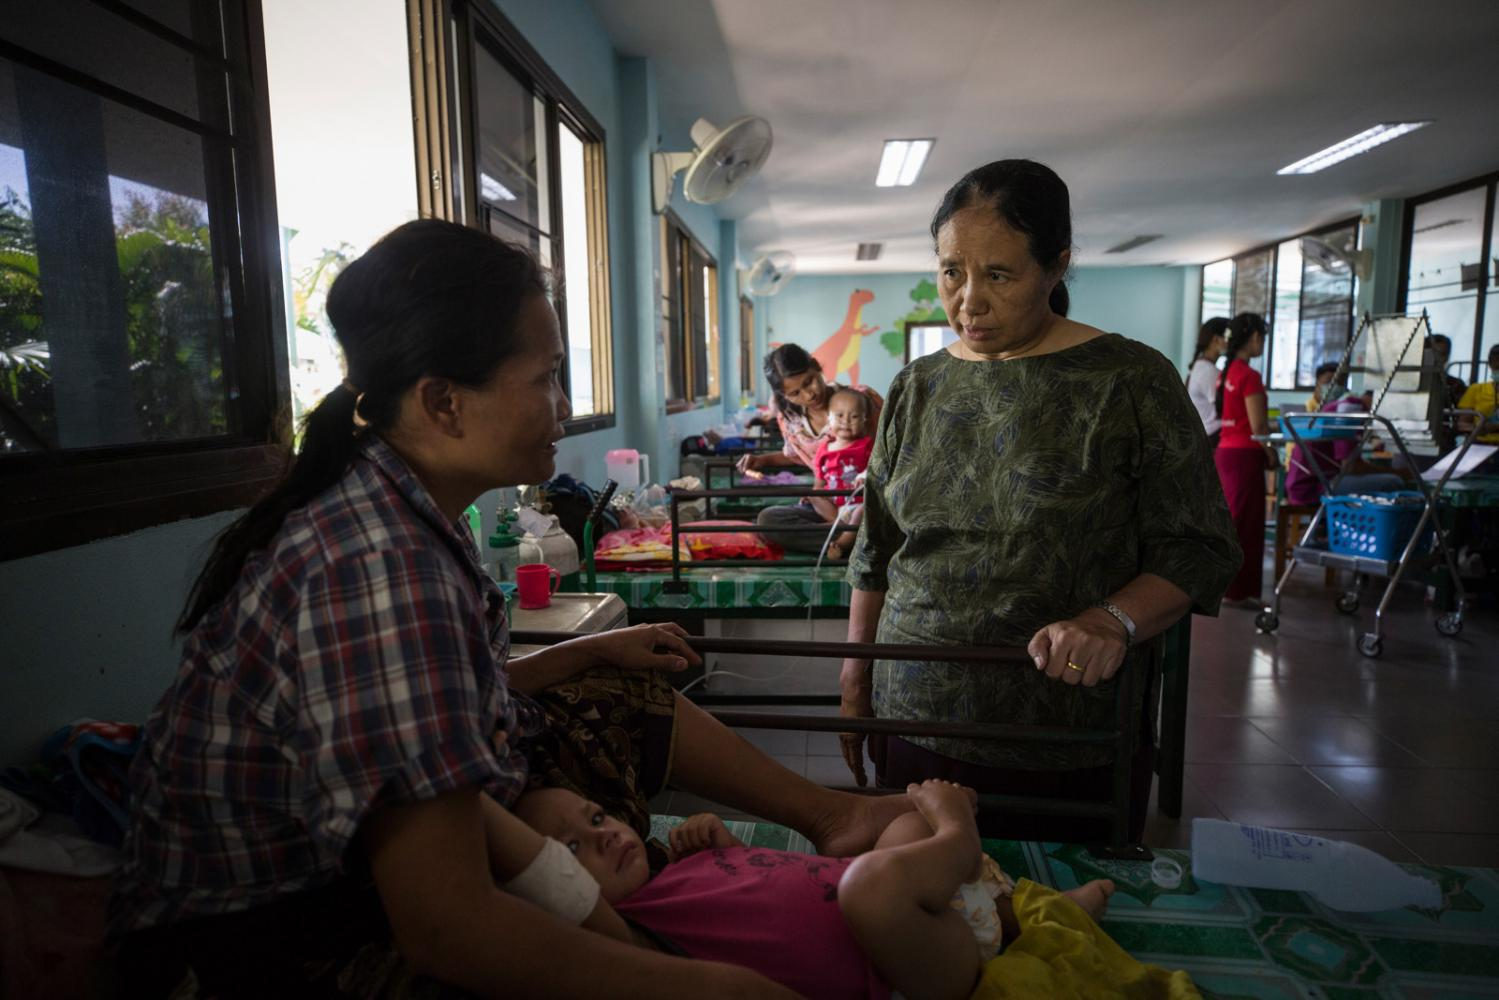 Dr Cynthia Maung, founder of Mae Tao clinic, visits a patient in the inpatient ward. With dengue fever numbers high every year this year saw the outbreak of another mosquito borne disease called Chikunguniya which not only affected the patients but was also caught by over 60 of her hospital staff. Mae Sot, Thailand - October 2019